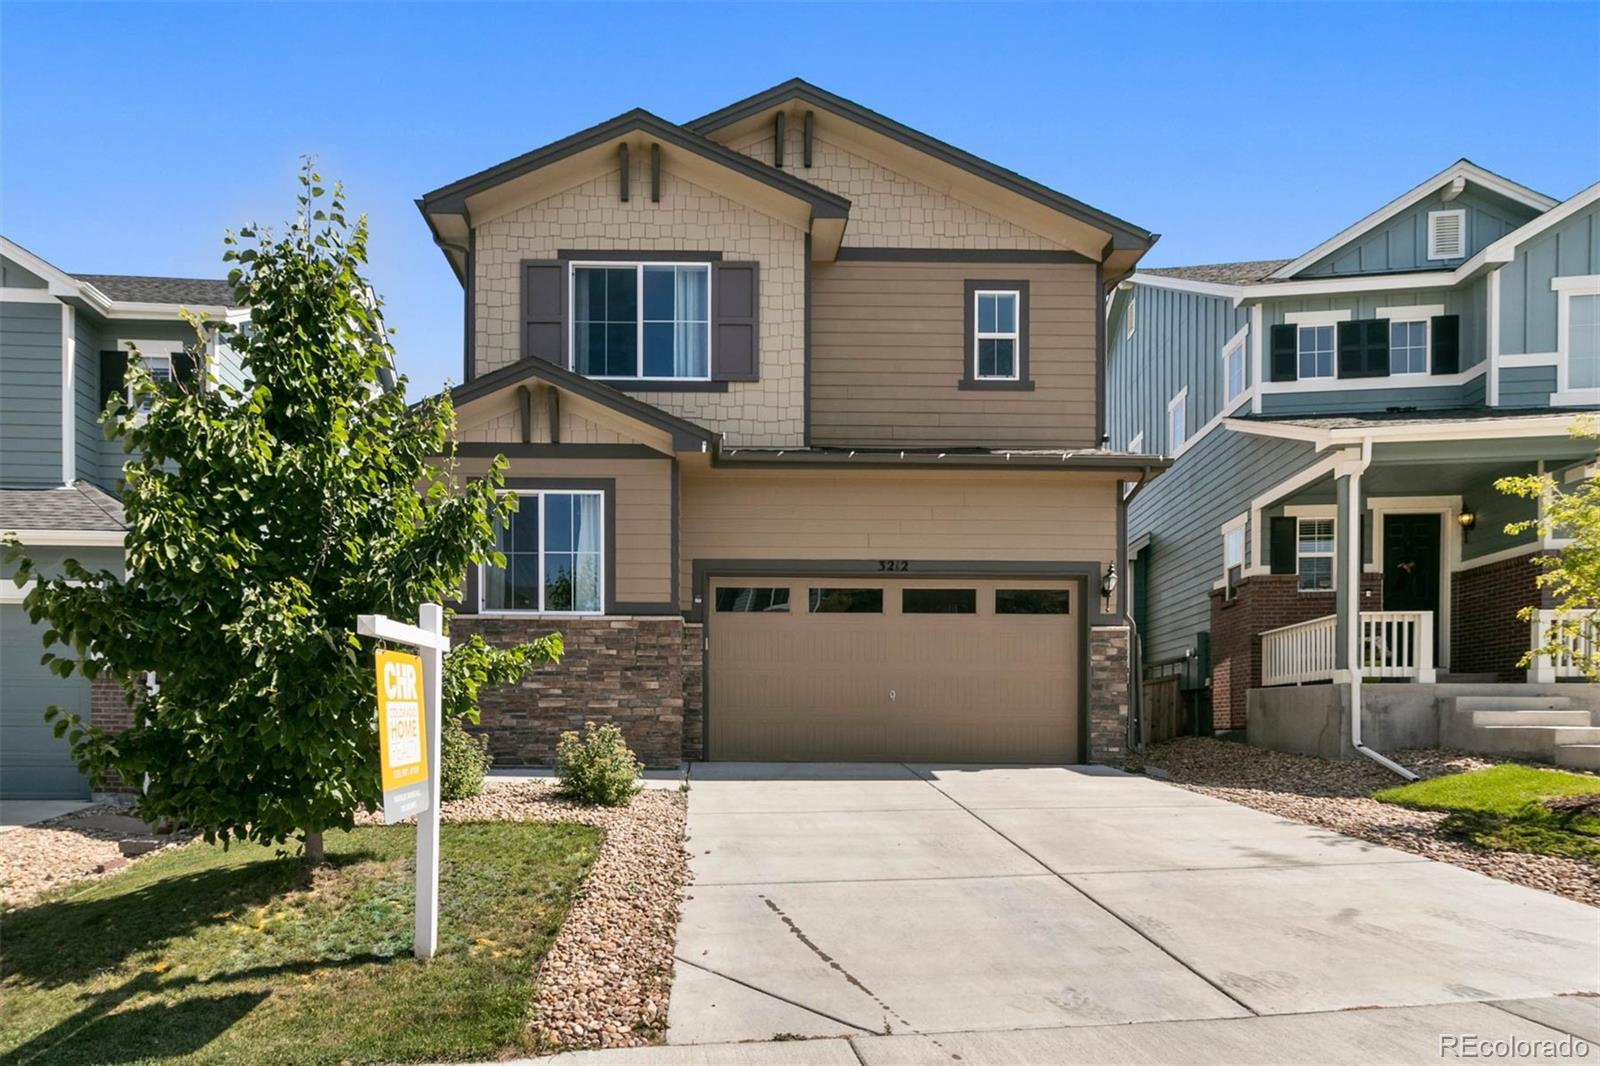 3212 Youngheart Way, Castle Rock, CO 80109 - #: 3366577